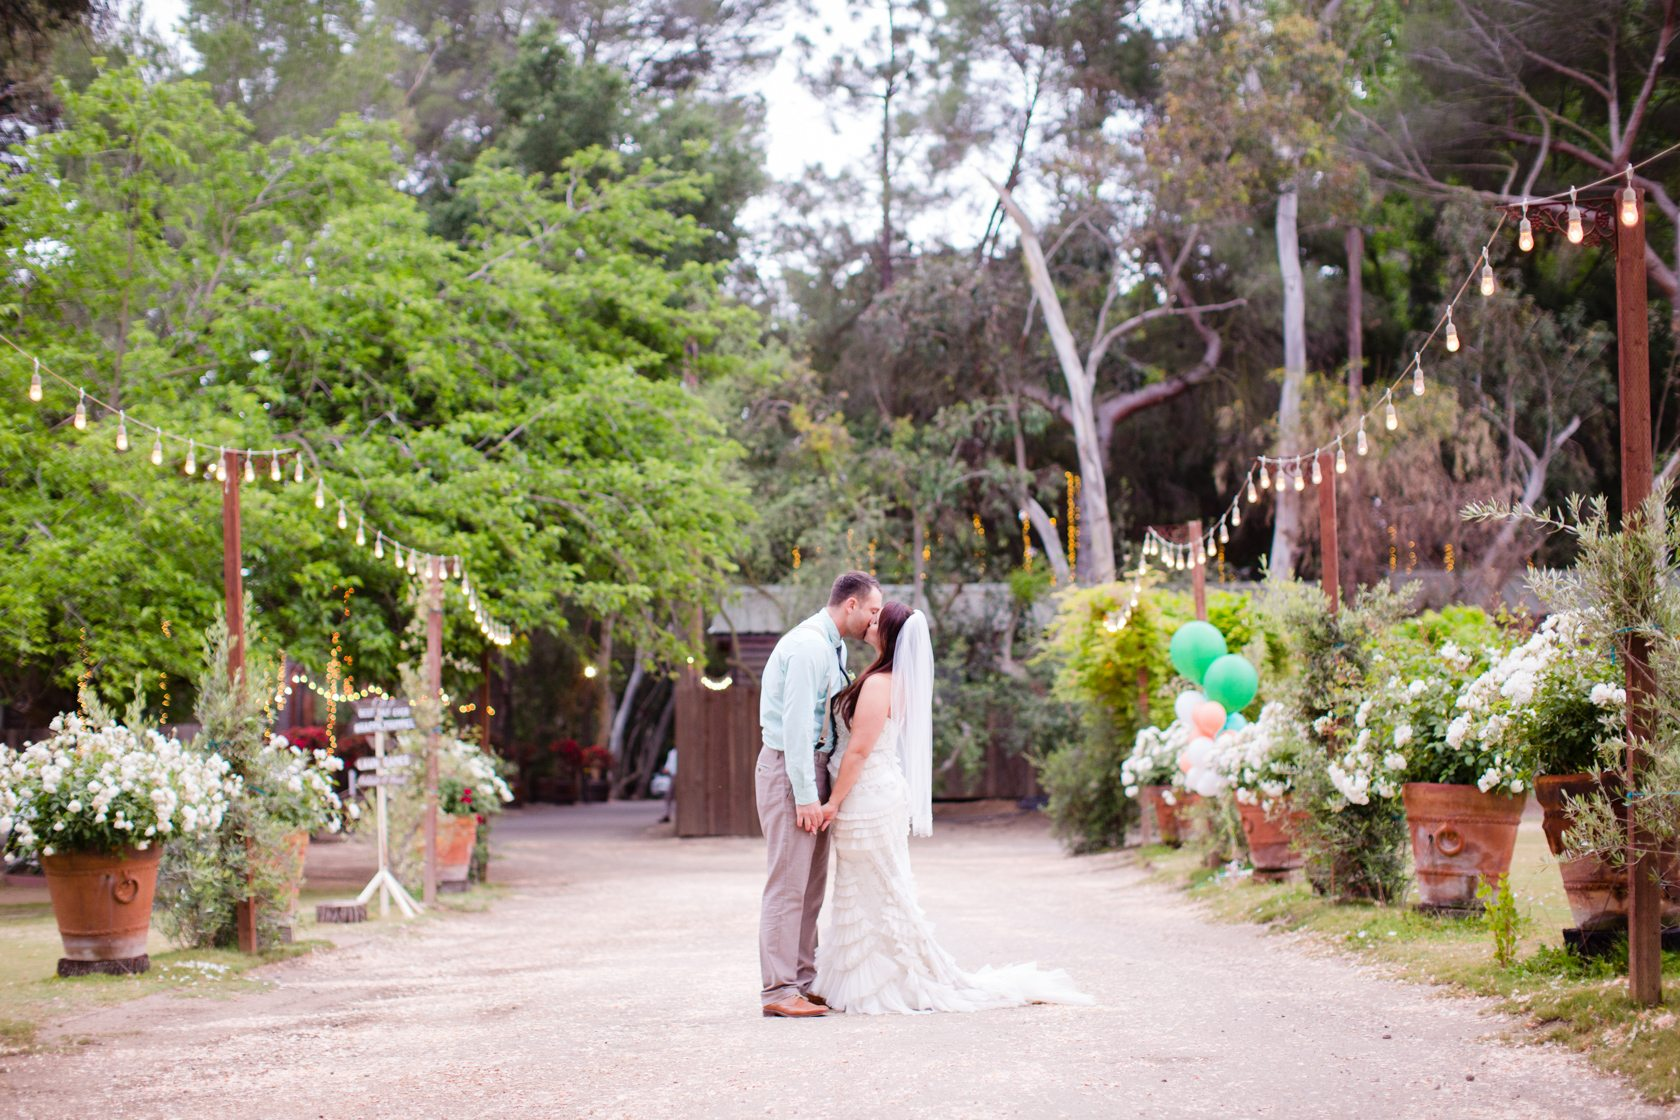 The_Printed_Palette_Wedding_at_Calamigos_Ranch_088.jpg